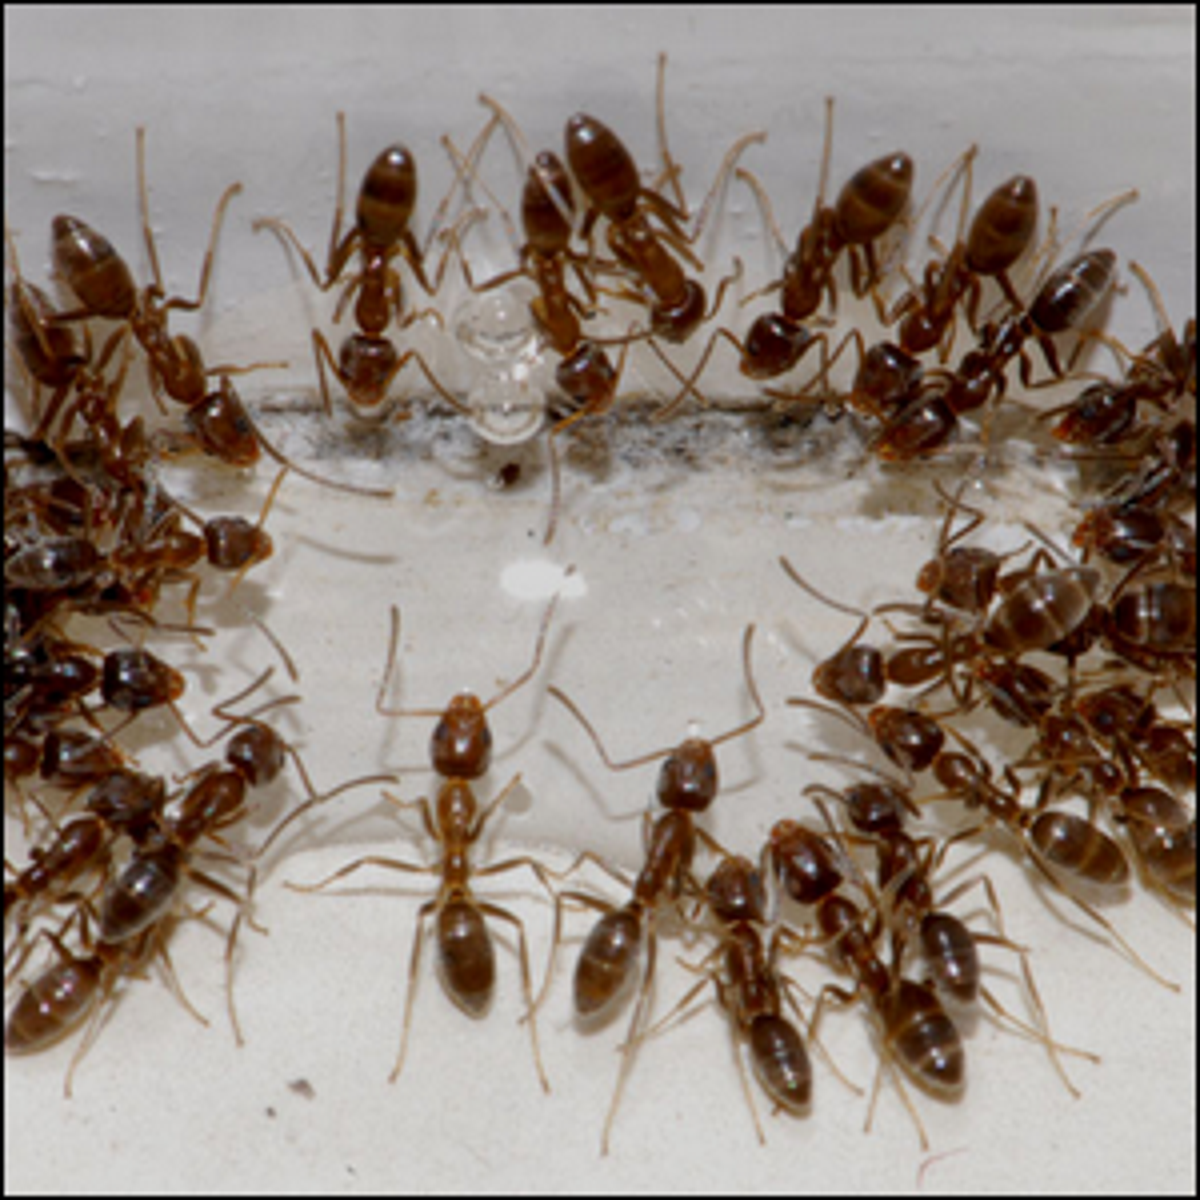 A group of Argentine Ants consuming sugar water.